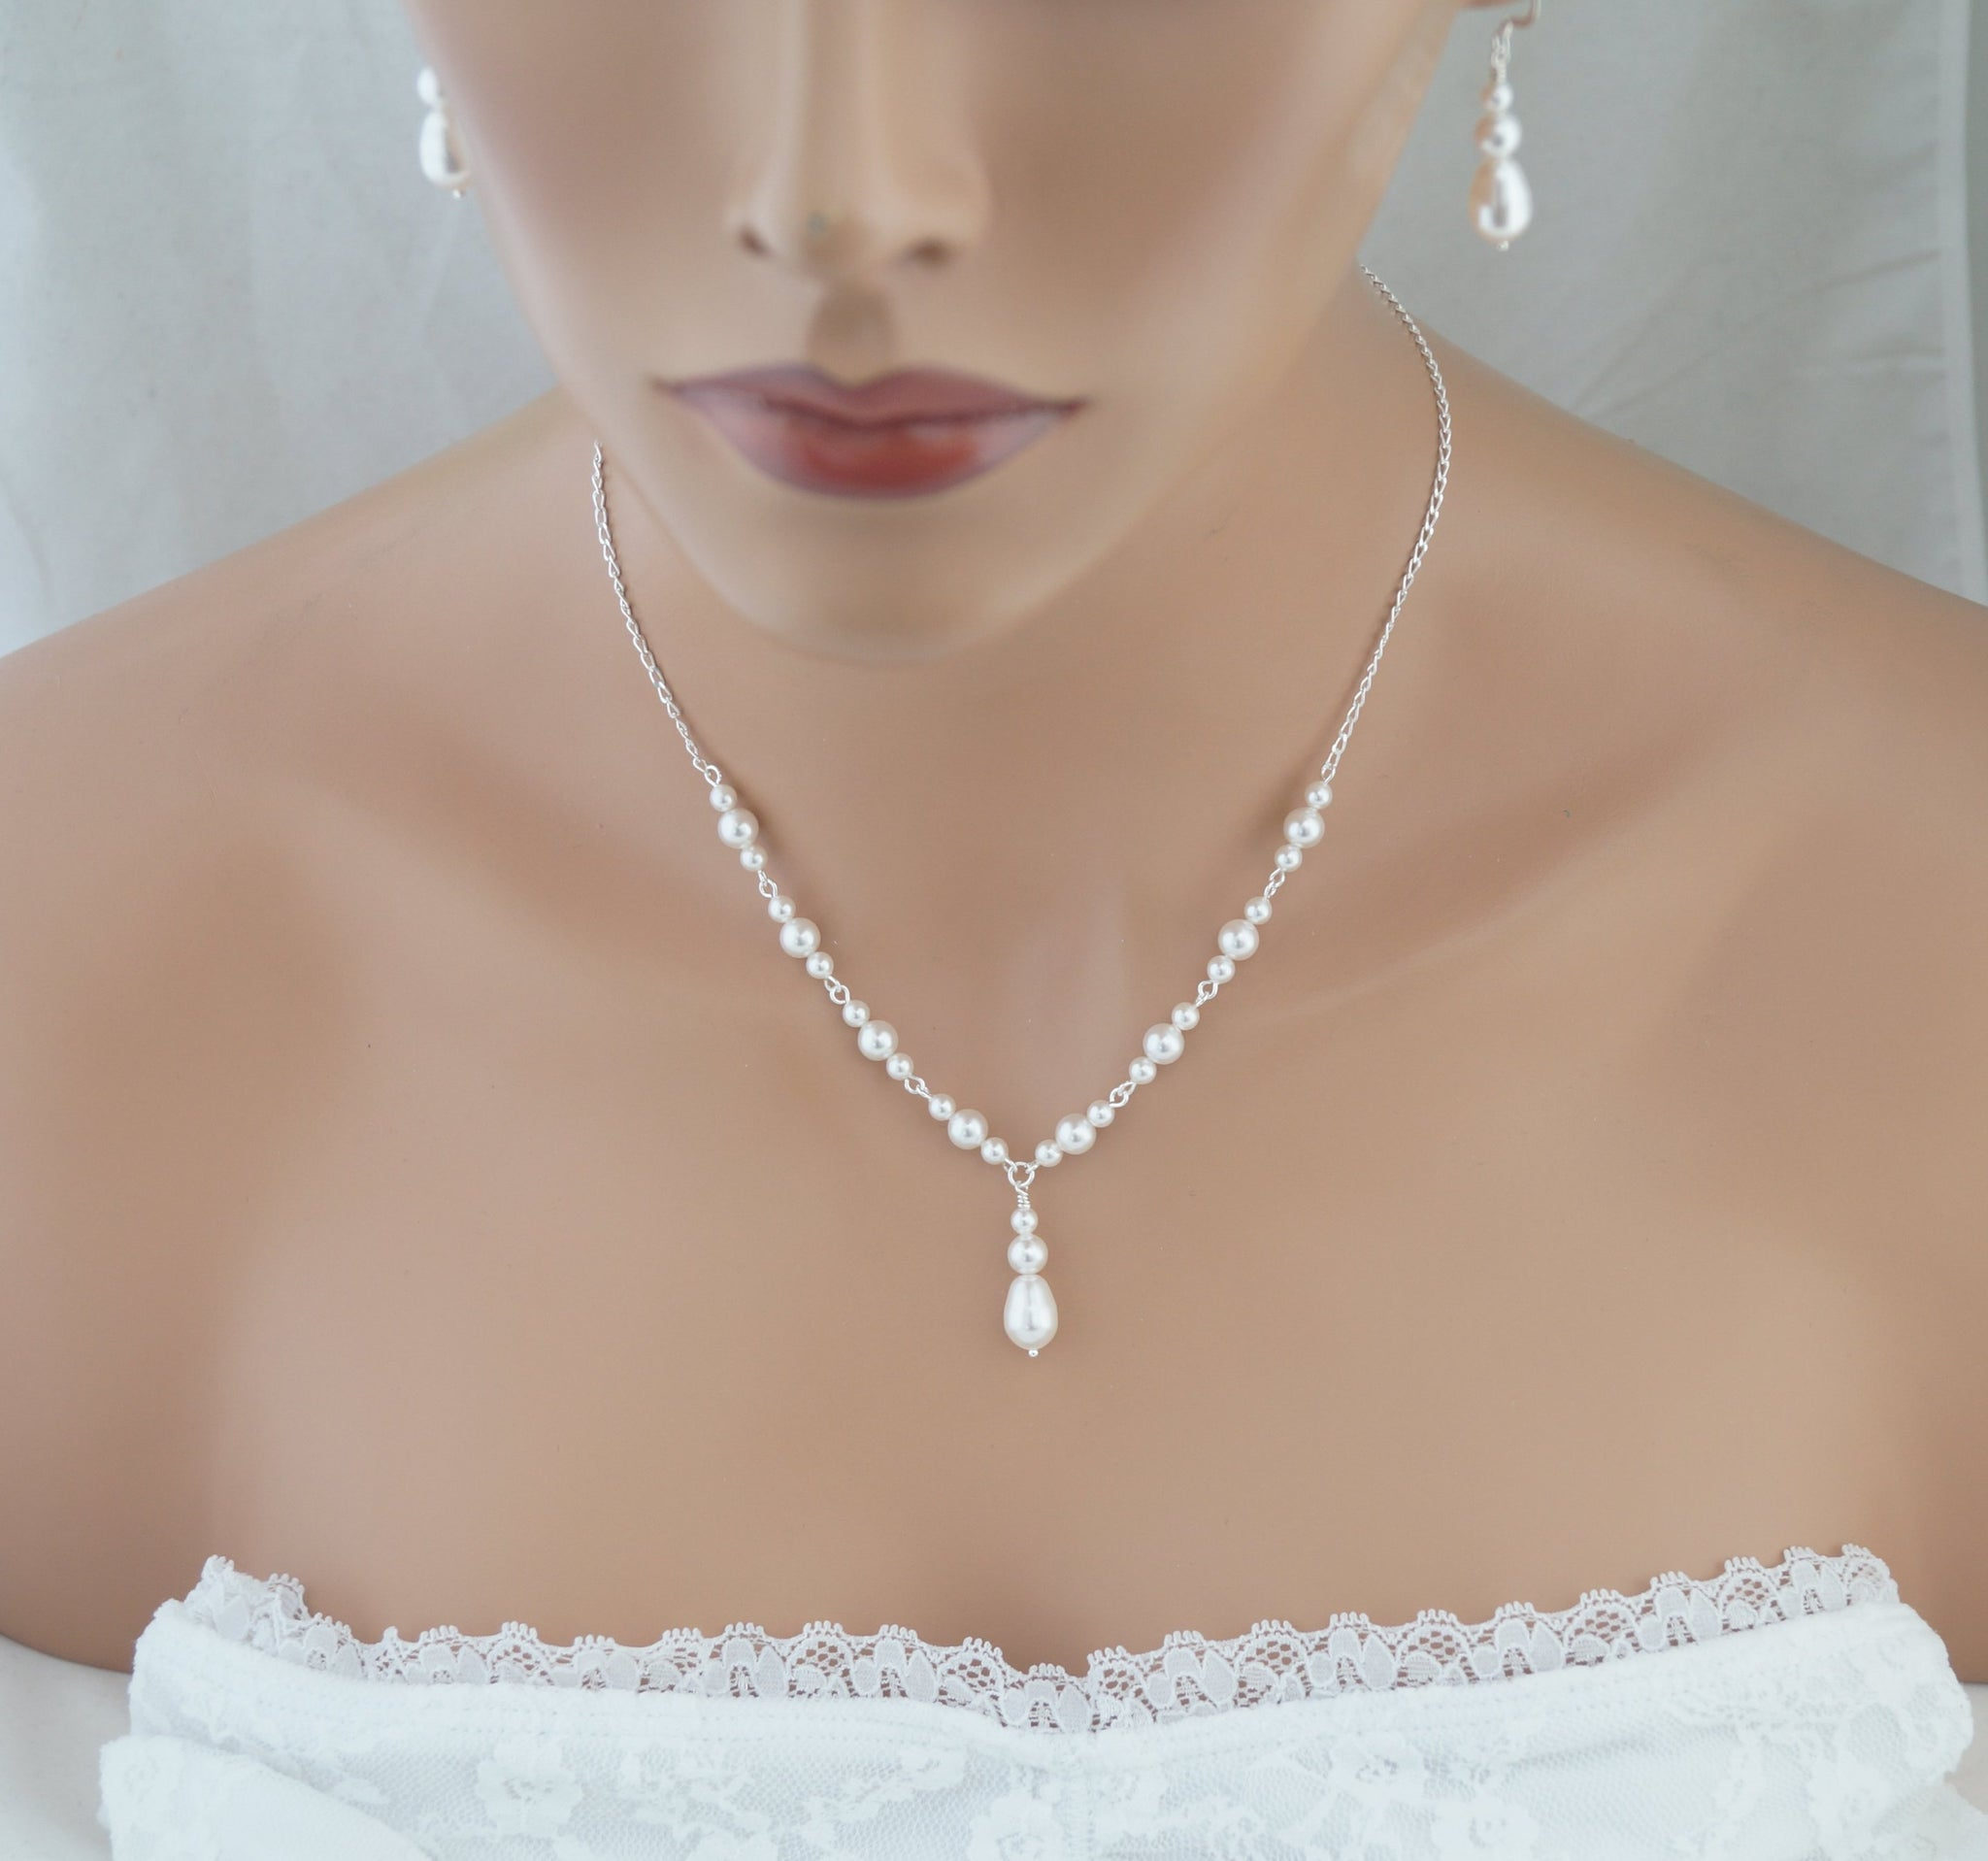 White Pearl Necklace and Earrings Set Wedding Jewelry Set - Clairesbridal - 4